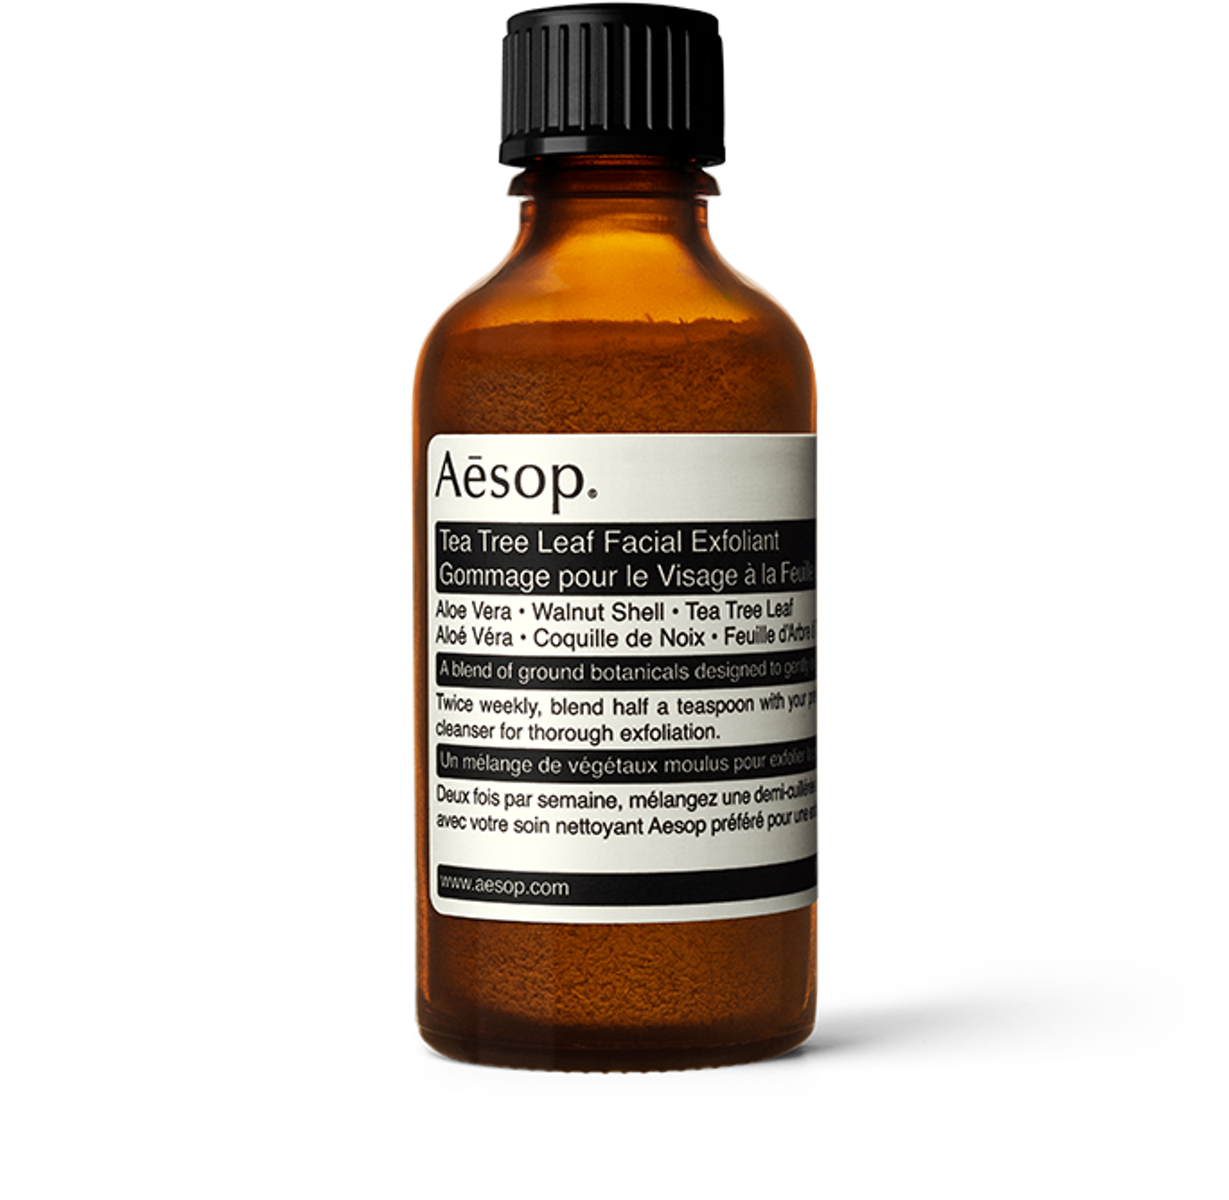 Aesop-Skin-Tea-Tree-Leaf-Facial-Exfoliant-30g-large